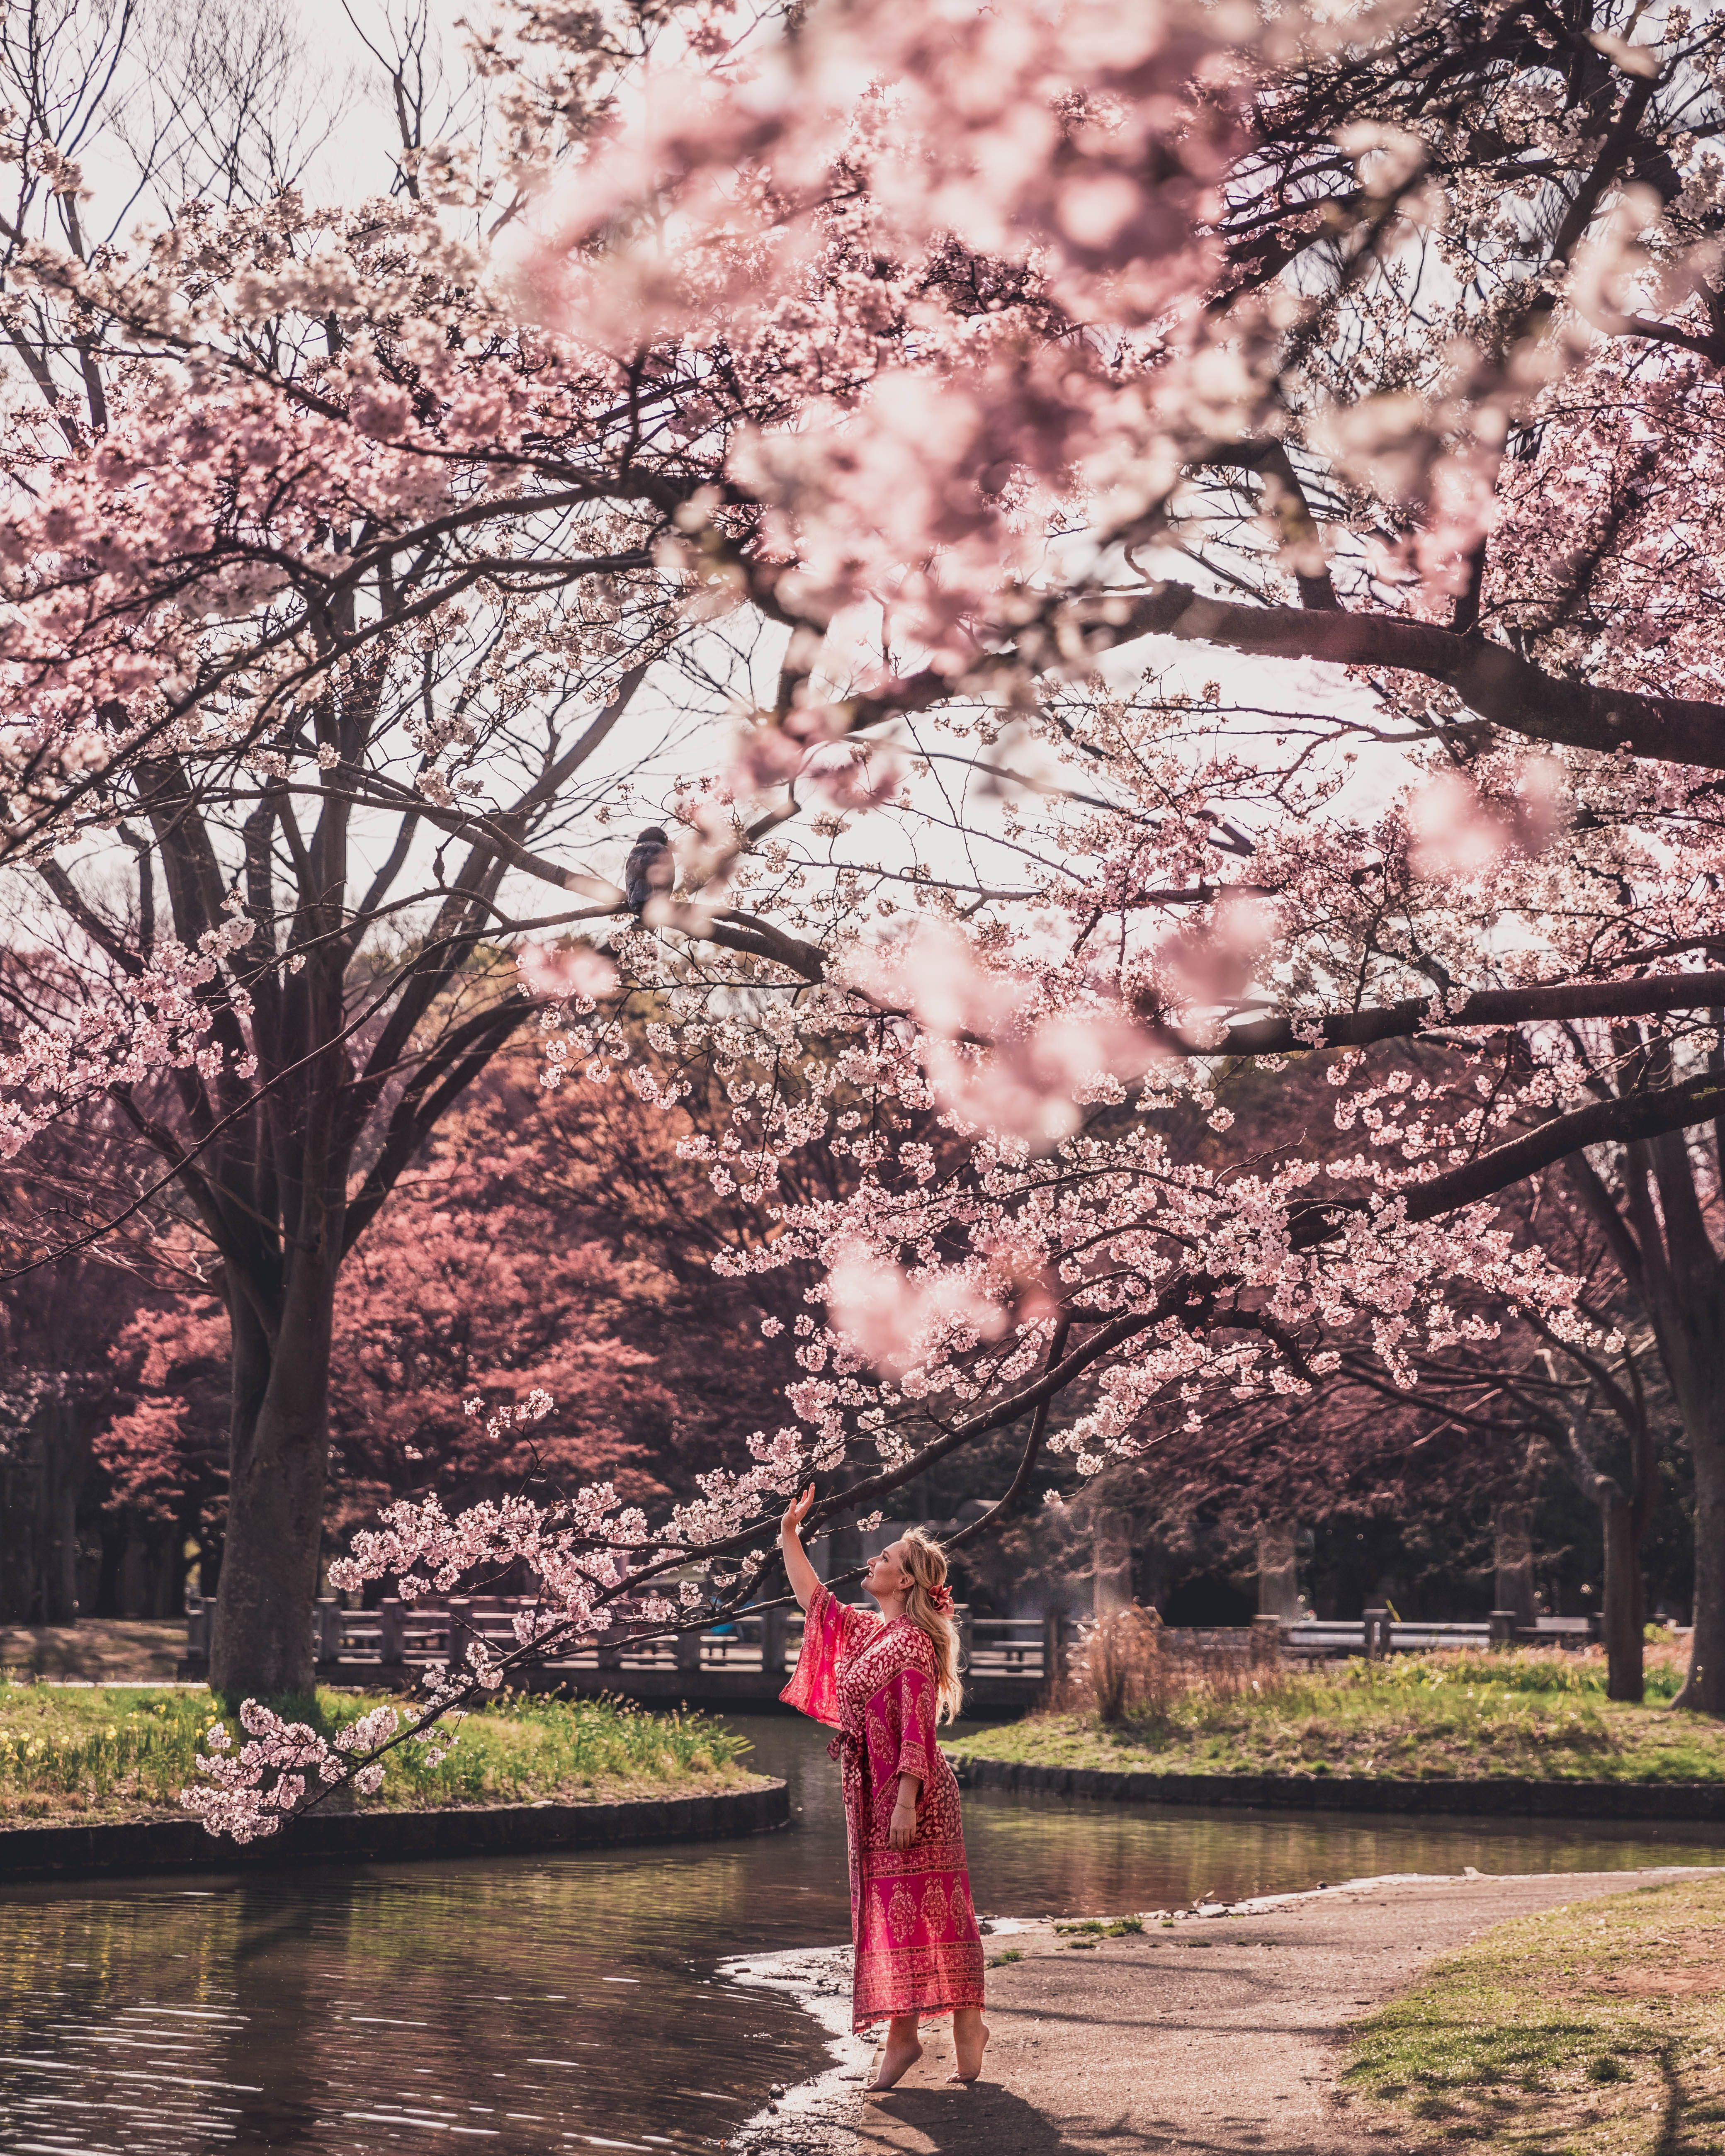 Things To Know About The National Cherry Blossom Festival In Washington Dc Washington Dc Cherry Blossom Festival Cherry Blossom Pictures Cherry Blossom Wallpaper